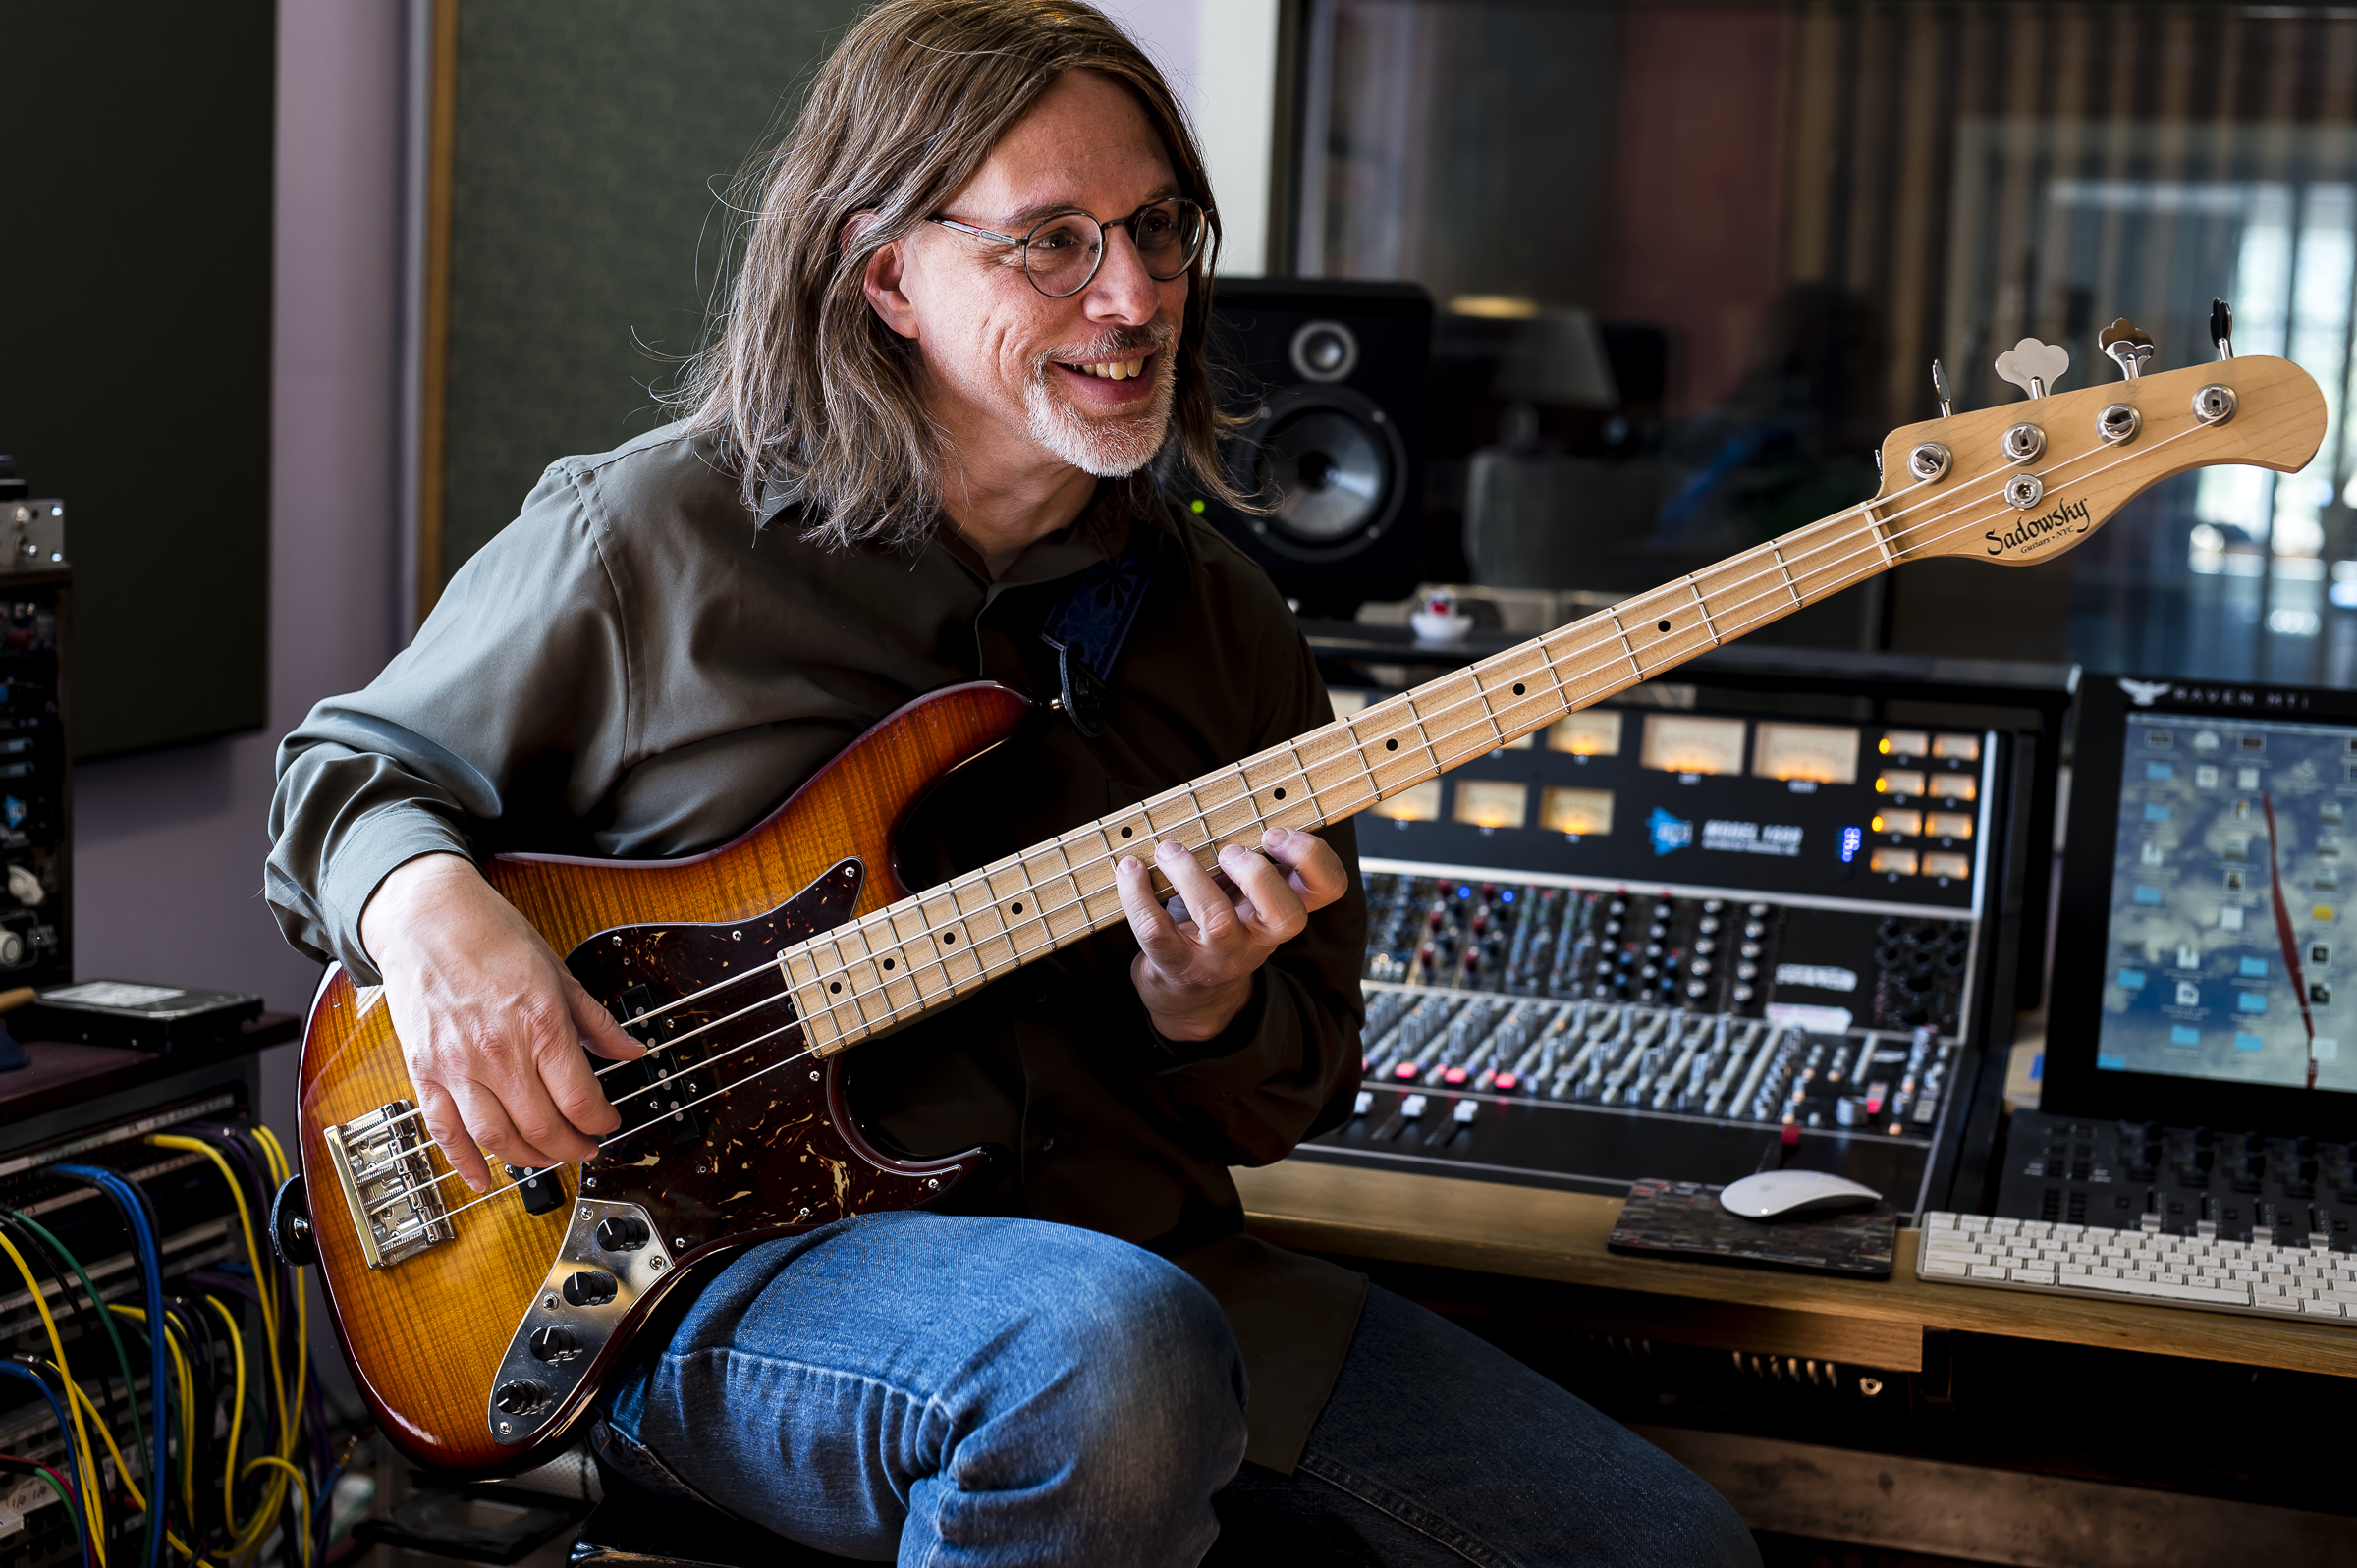 BASS MUSICIAN MAGAZINE: Award Winning Composer, Producer and Engineer Scott Petito Brings Together an All-Star Ensemble on Rainbow Gravity